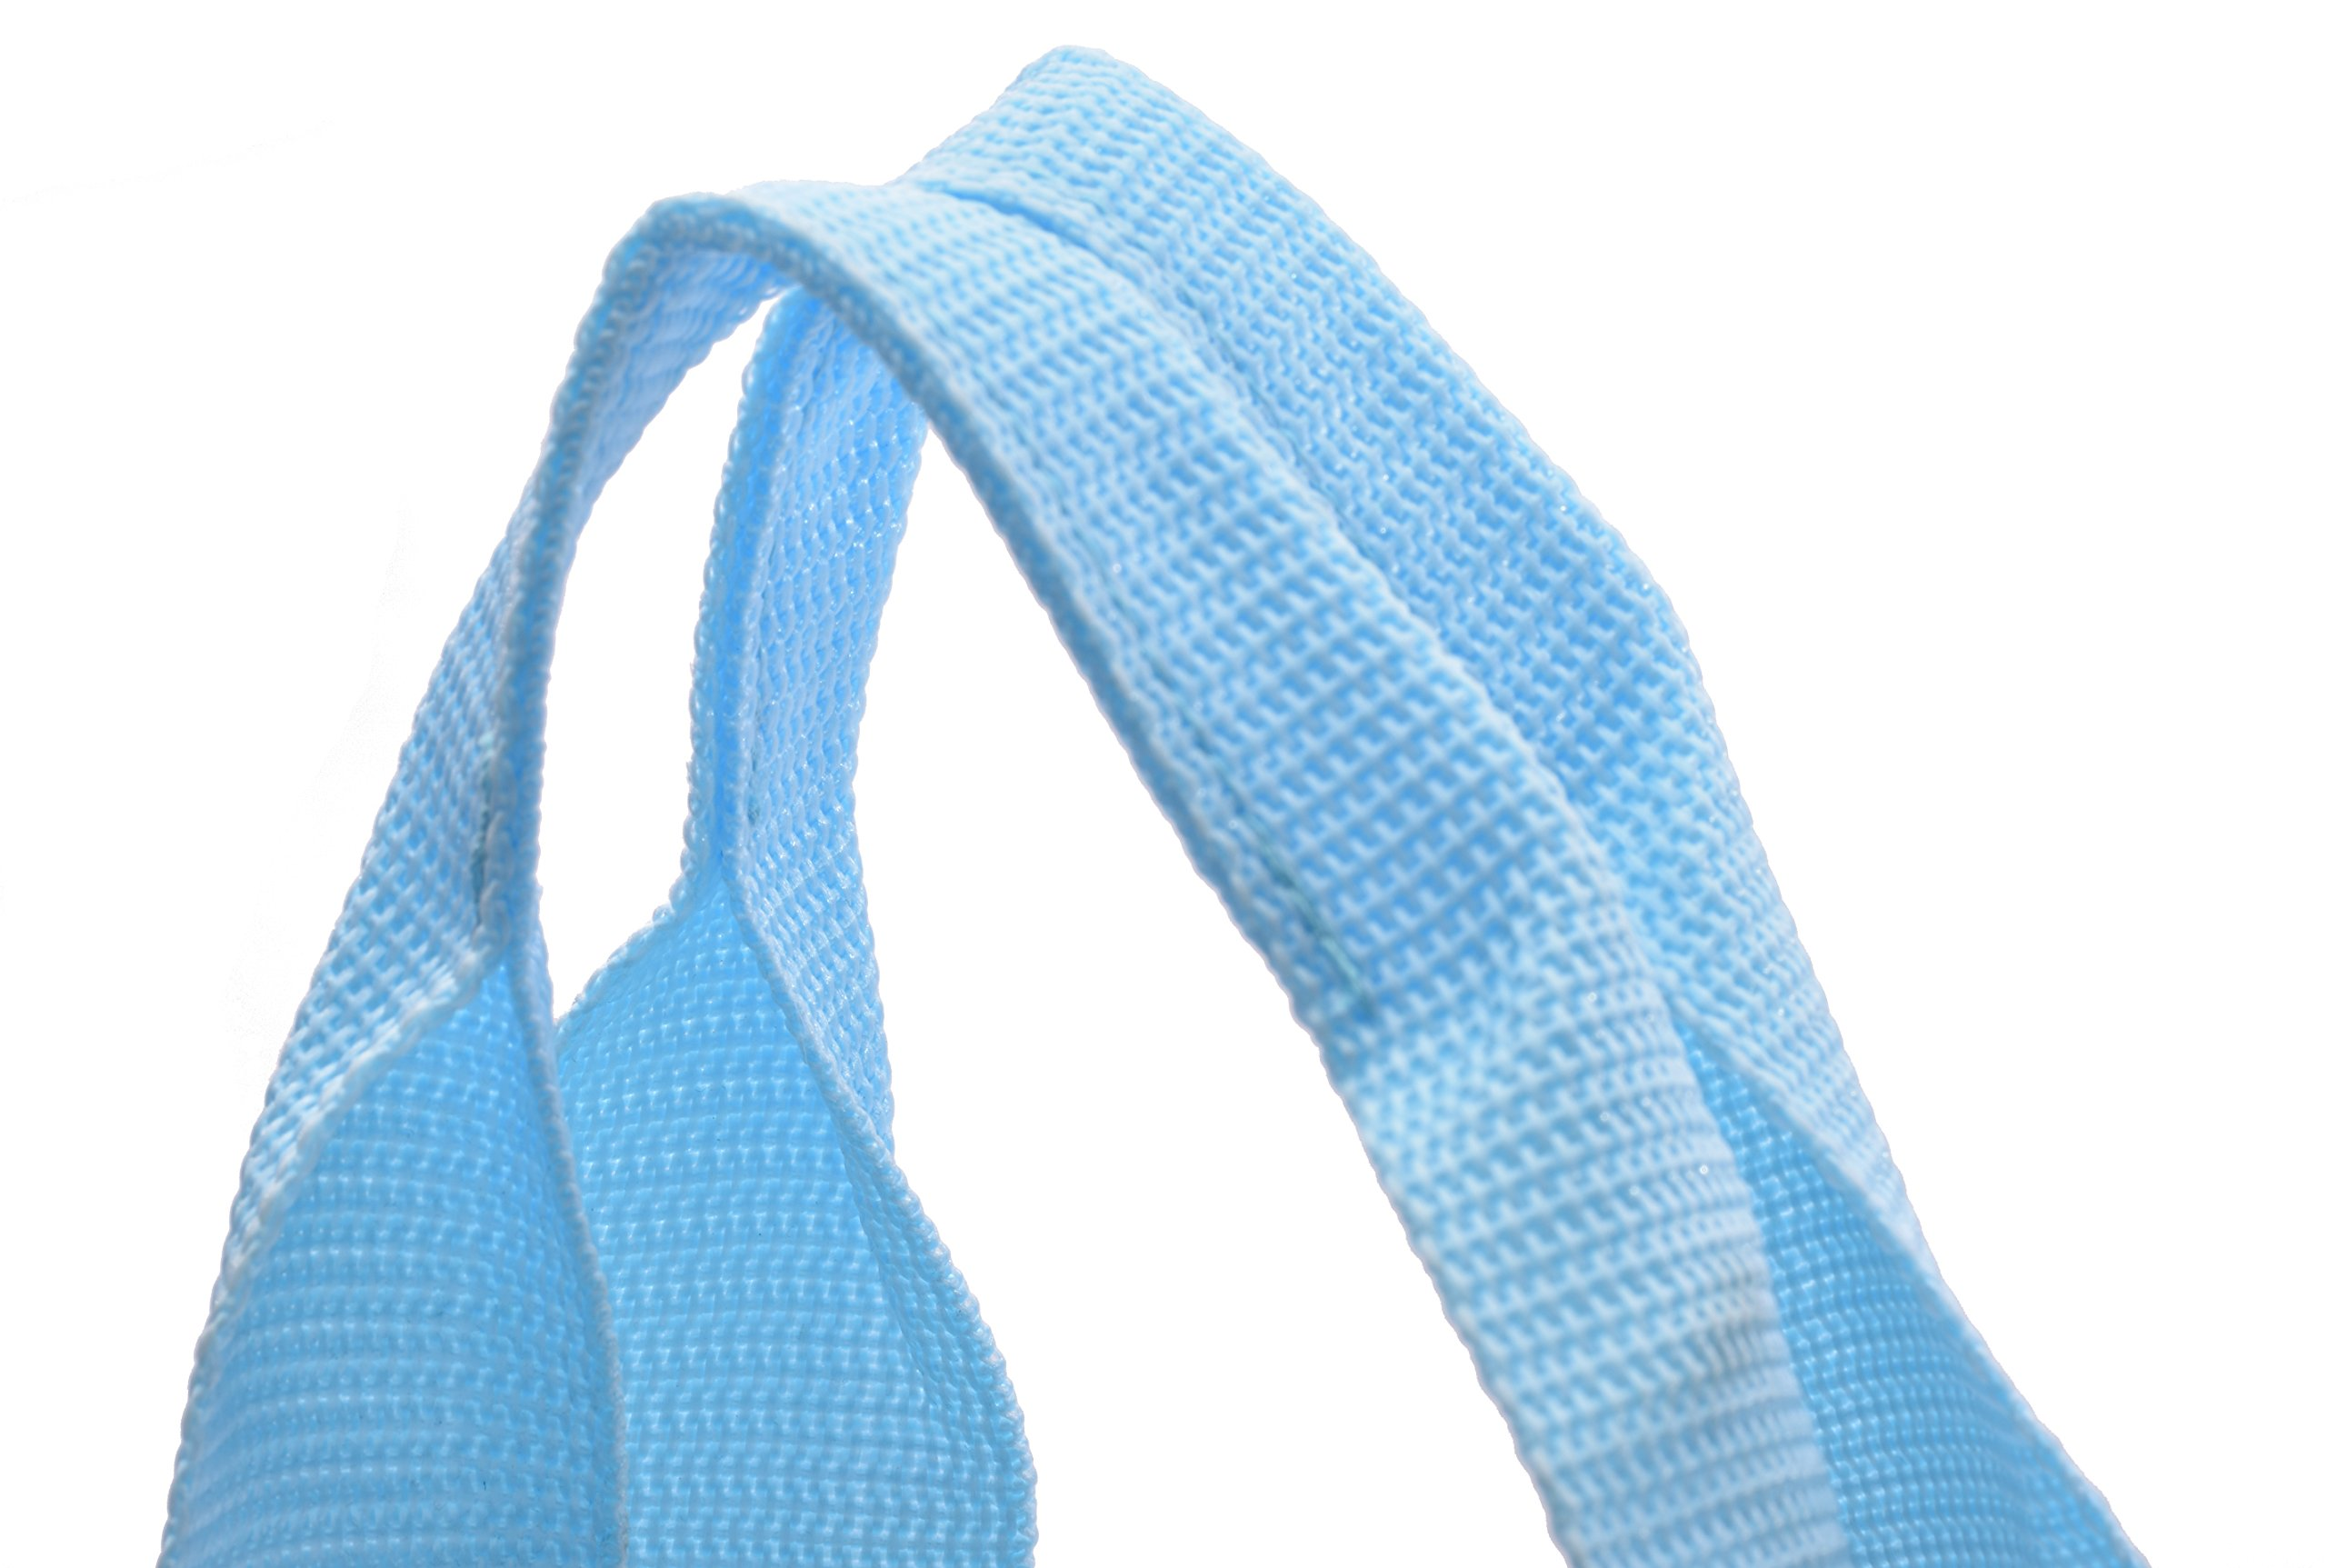 Clear Tote Bag - Top Zipper Closure, Long Shoulder Strap and Attractive Fabric Trimming. Perfect Transparent Travel Tote for all Places and Events where Clear Bags are Required. (Teal) by Handy Laundry (Image #6)